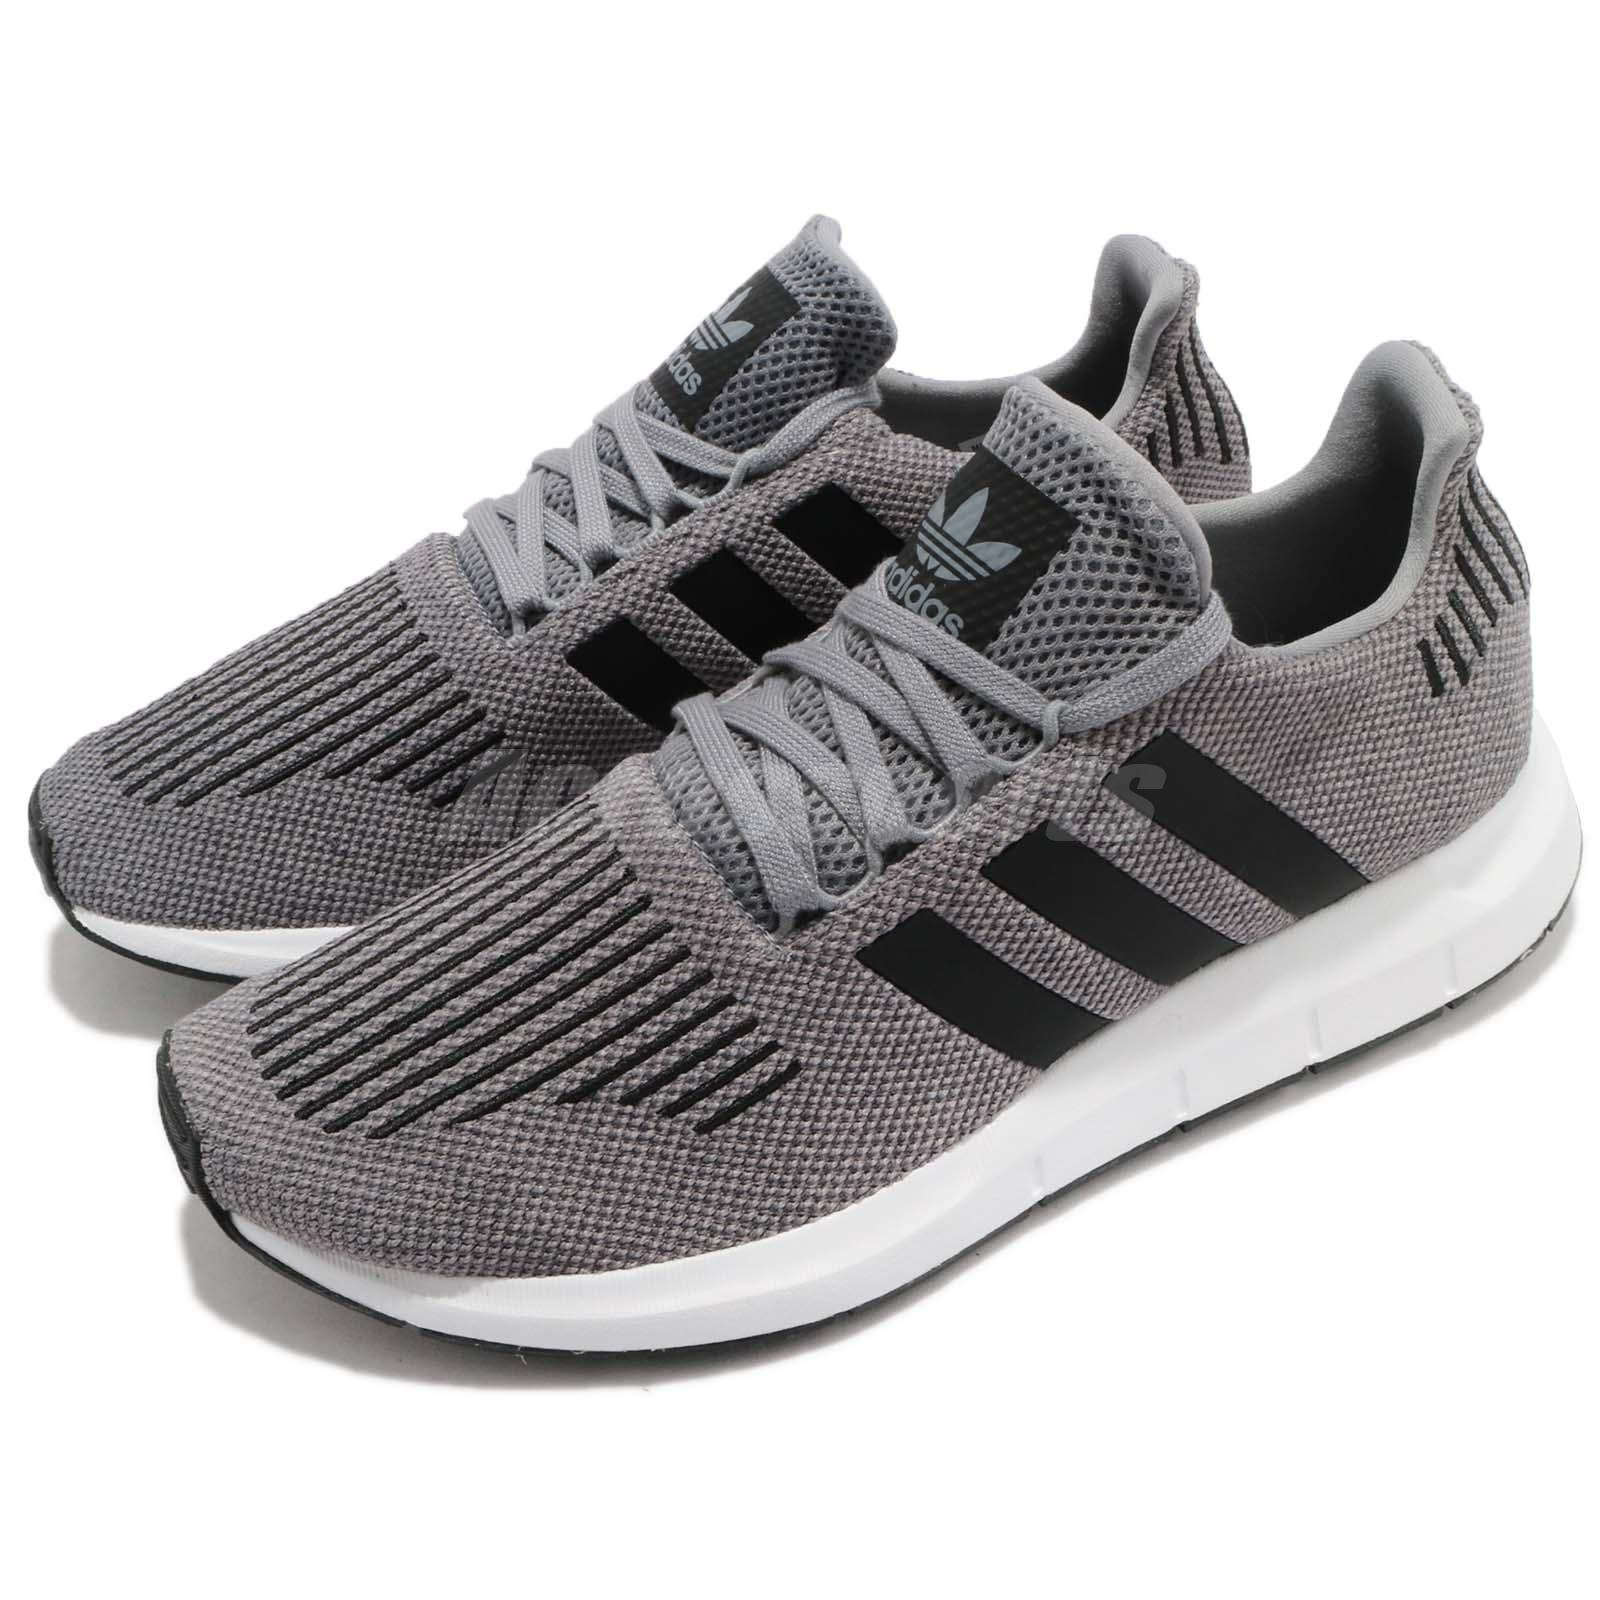 ADIDAS ORIGINALS Swift Run Sneakers for Men Grey